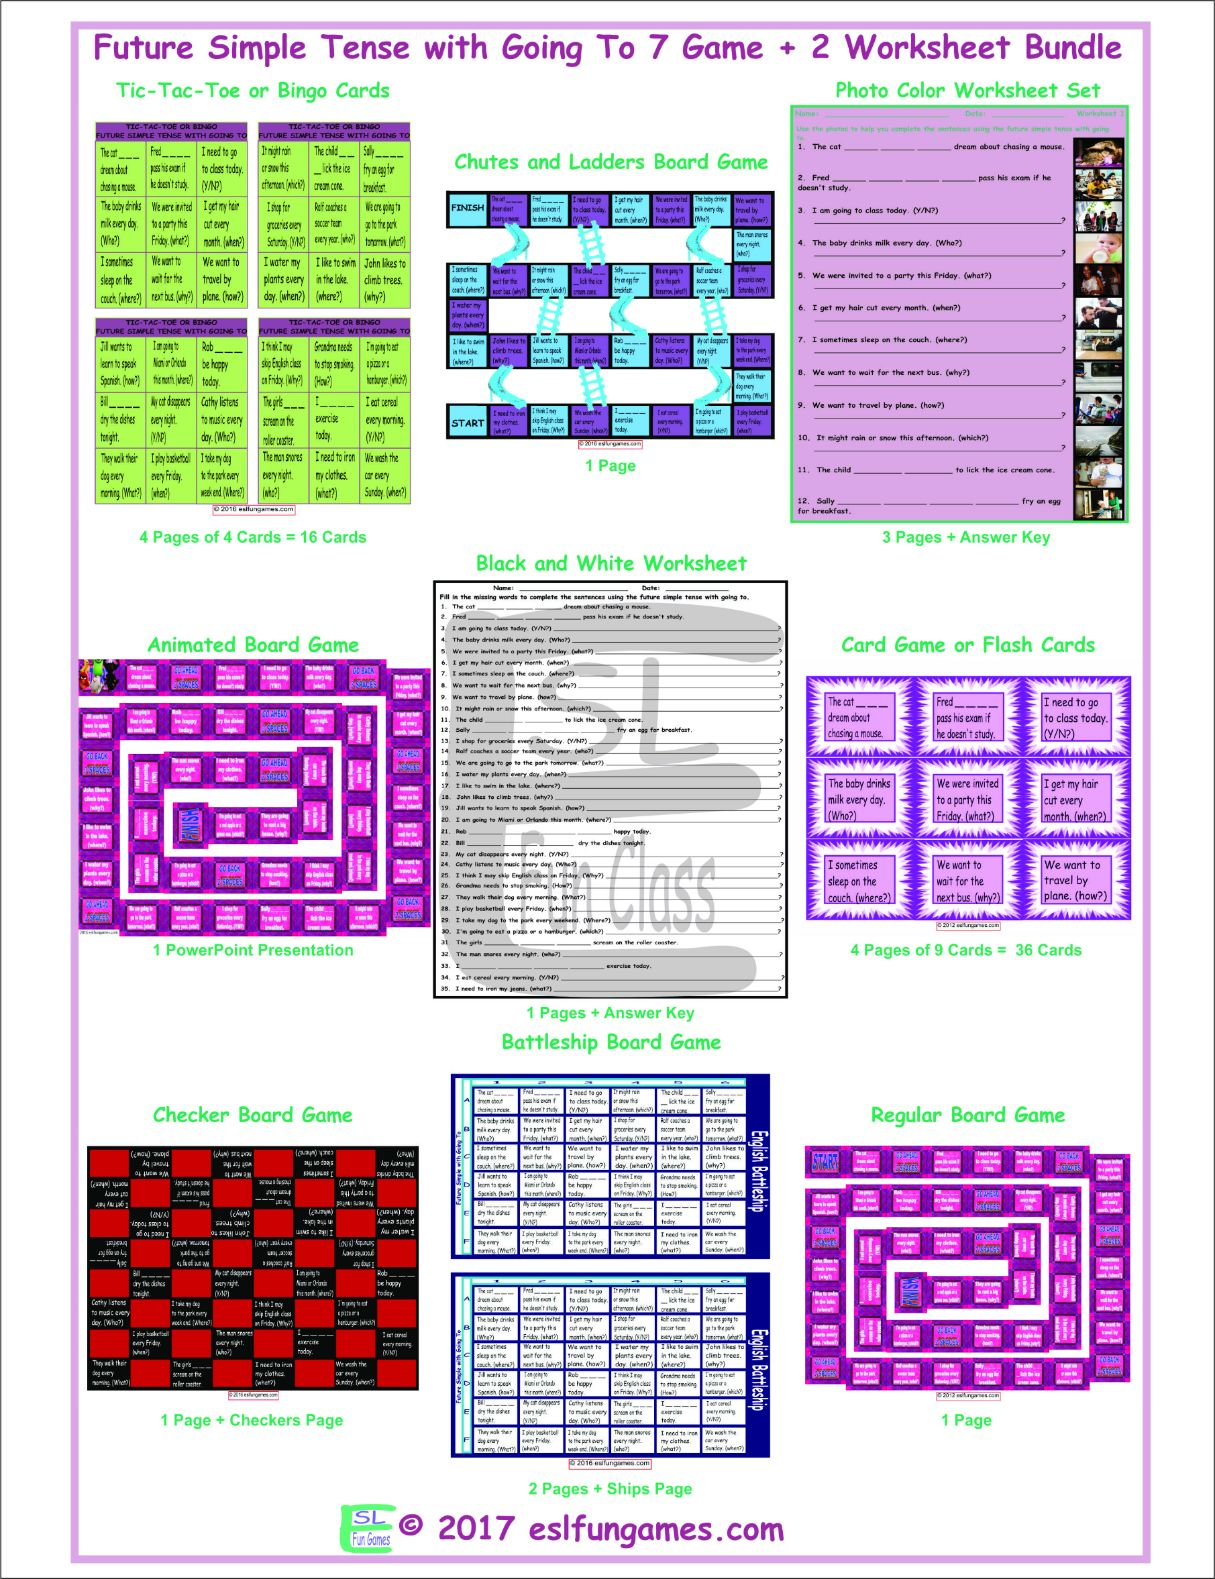 Future Simple Tense with Going To 7 Game Plus 2 Worksheet Bundle